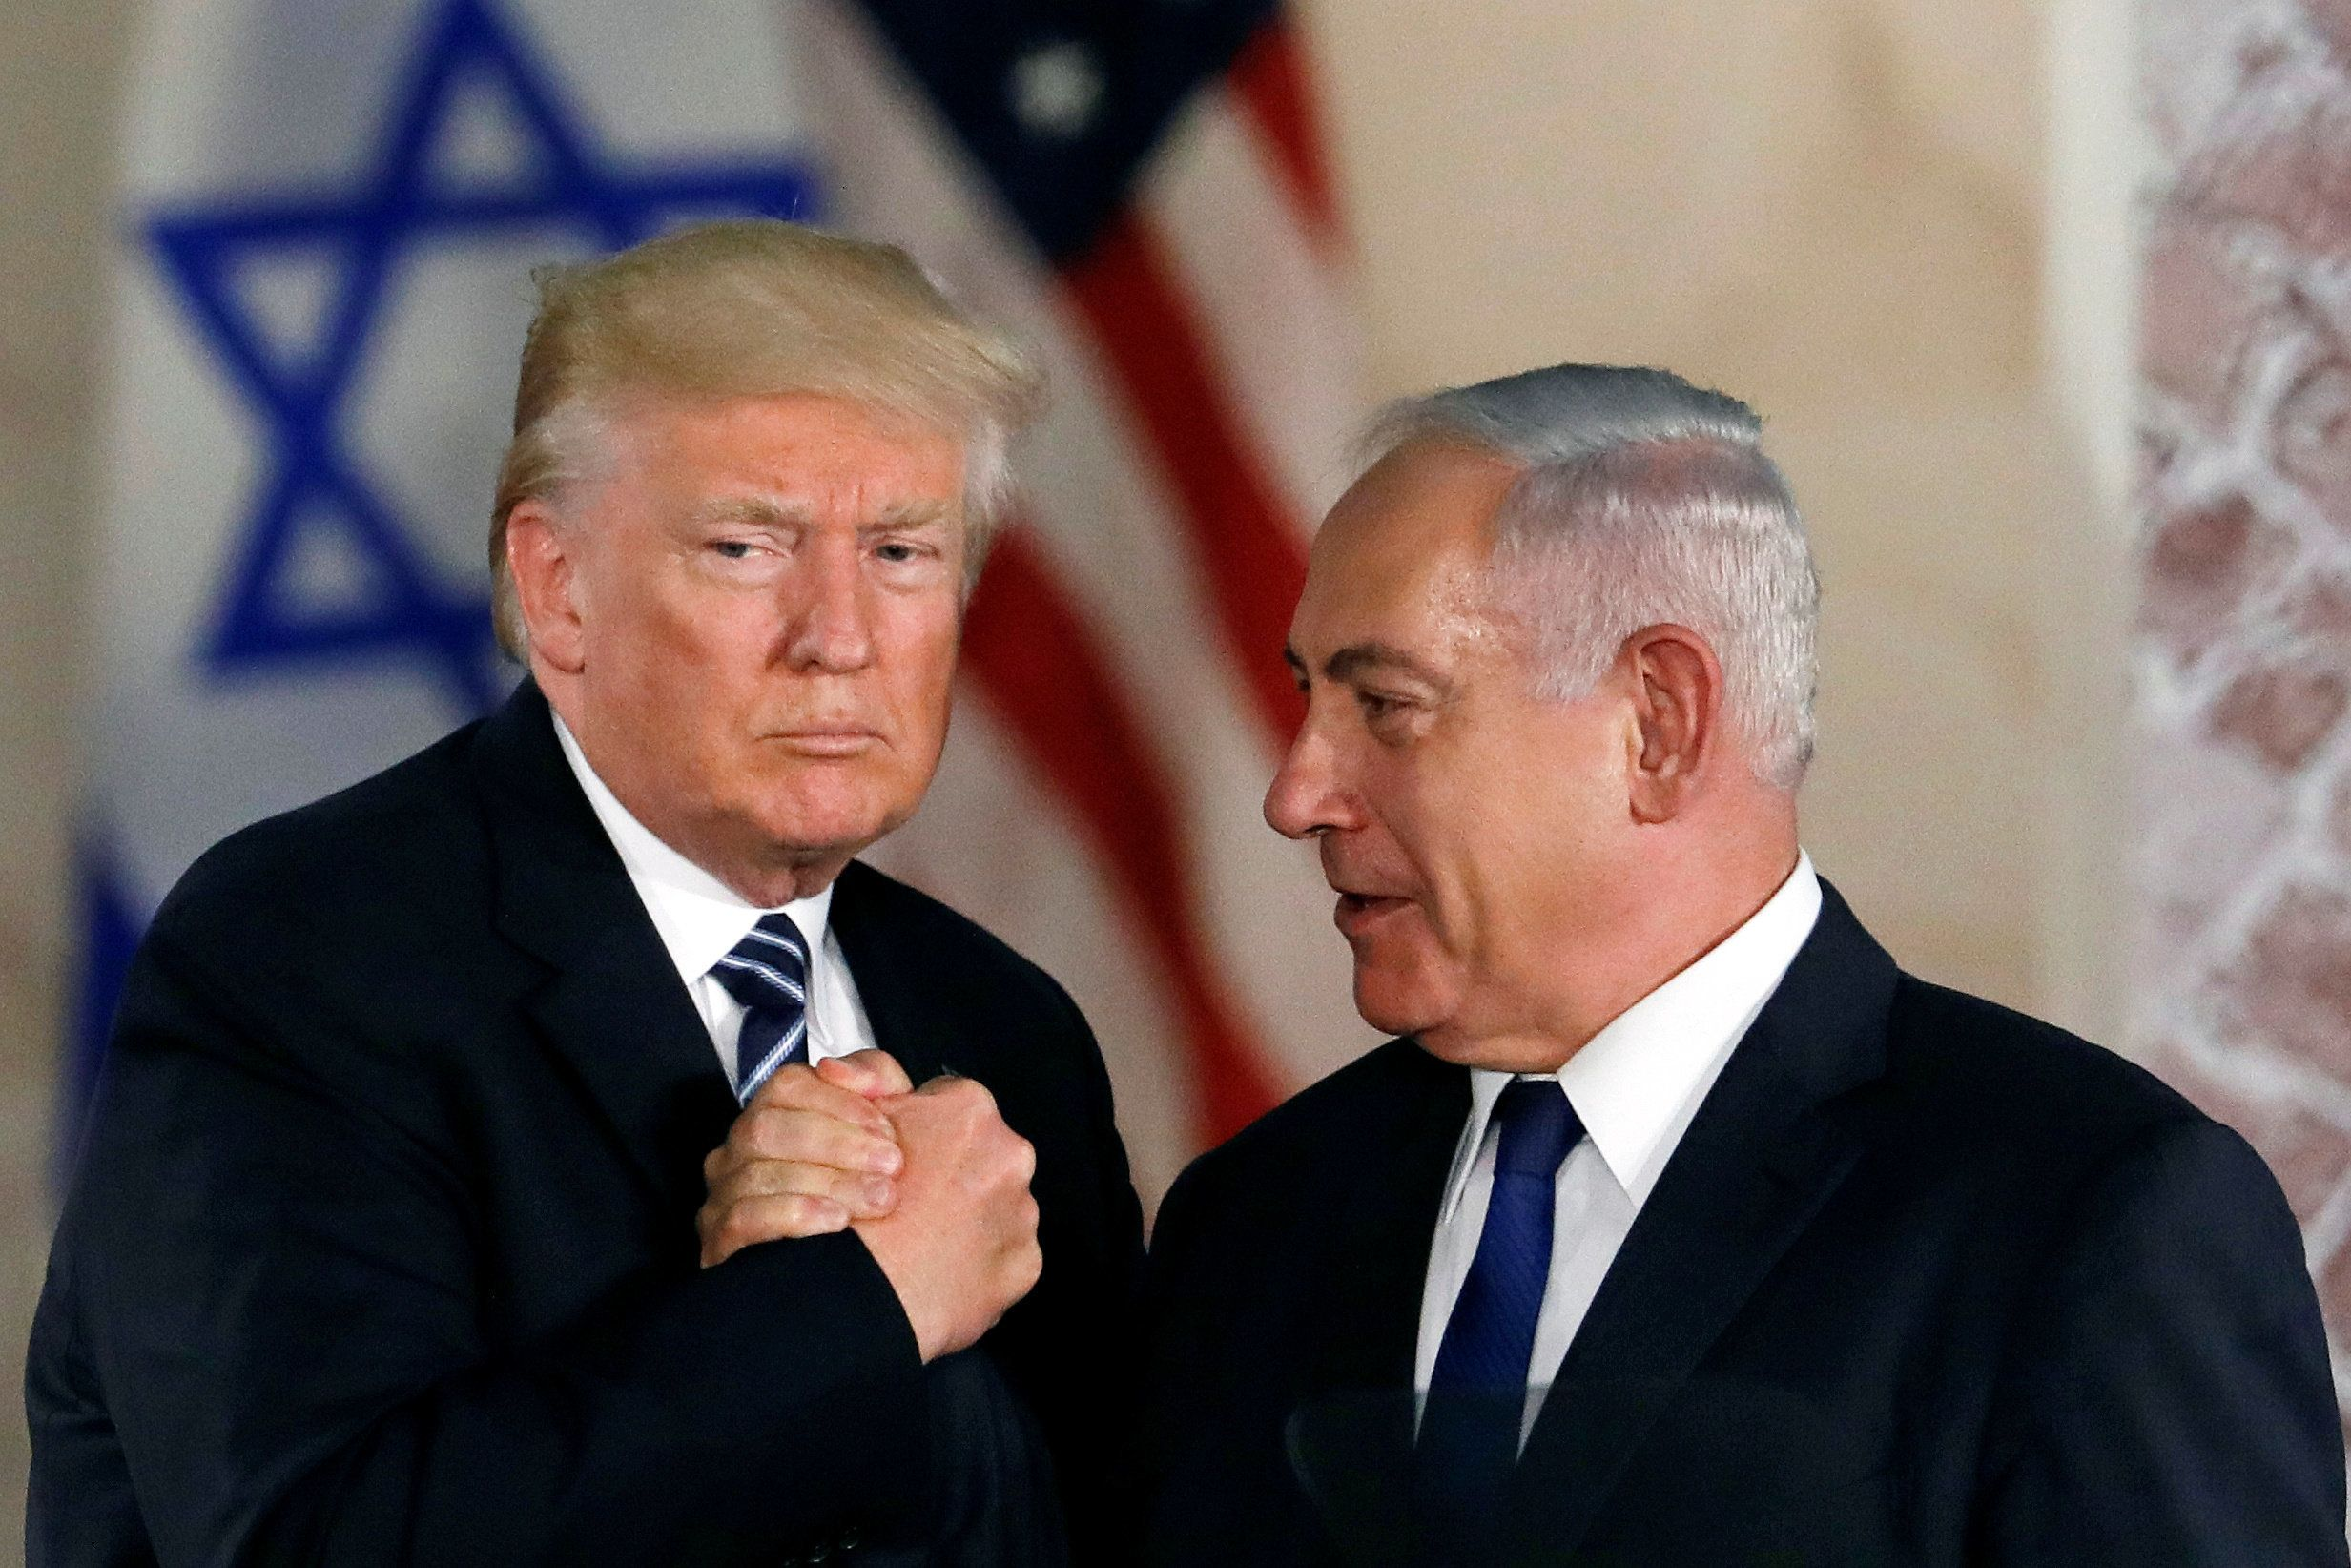 Netanyahu to follow 'bold, courageous' speech by Trump with own UN address